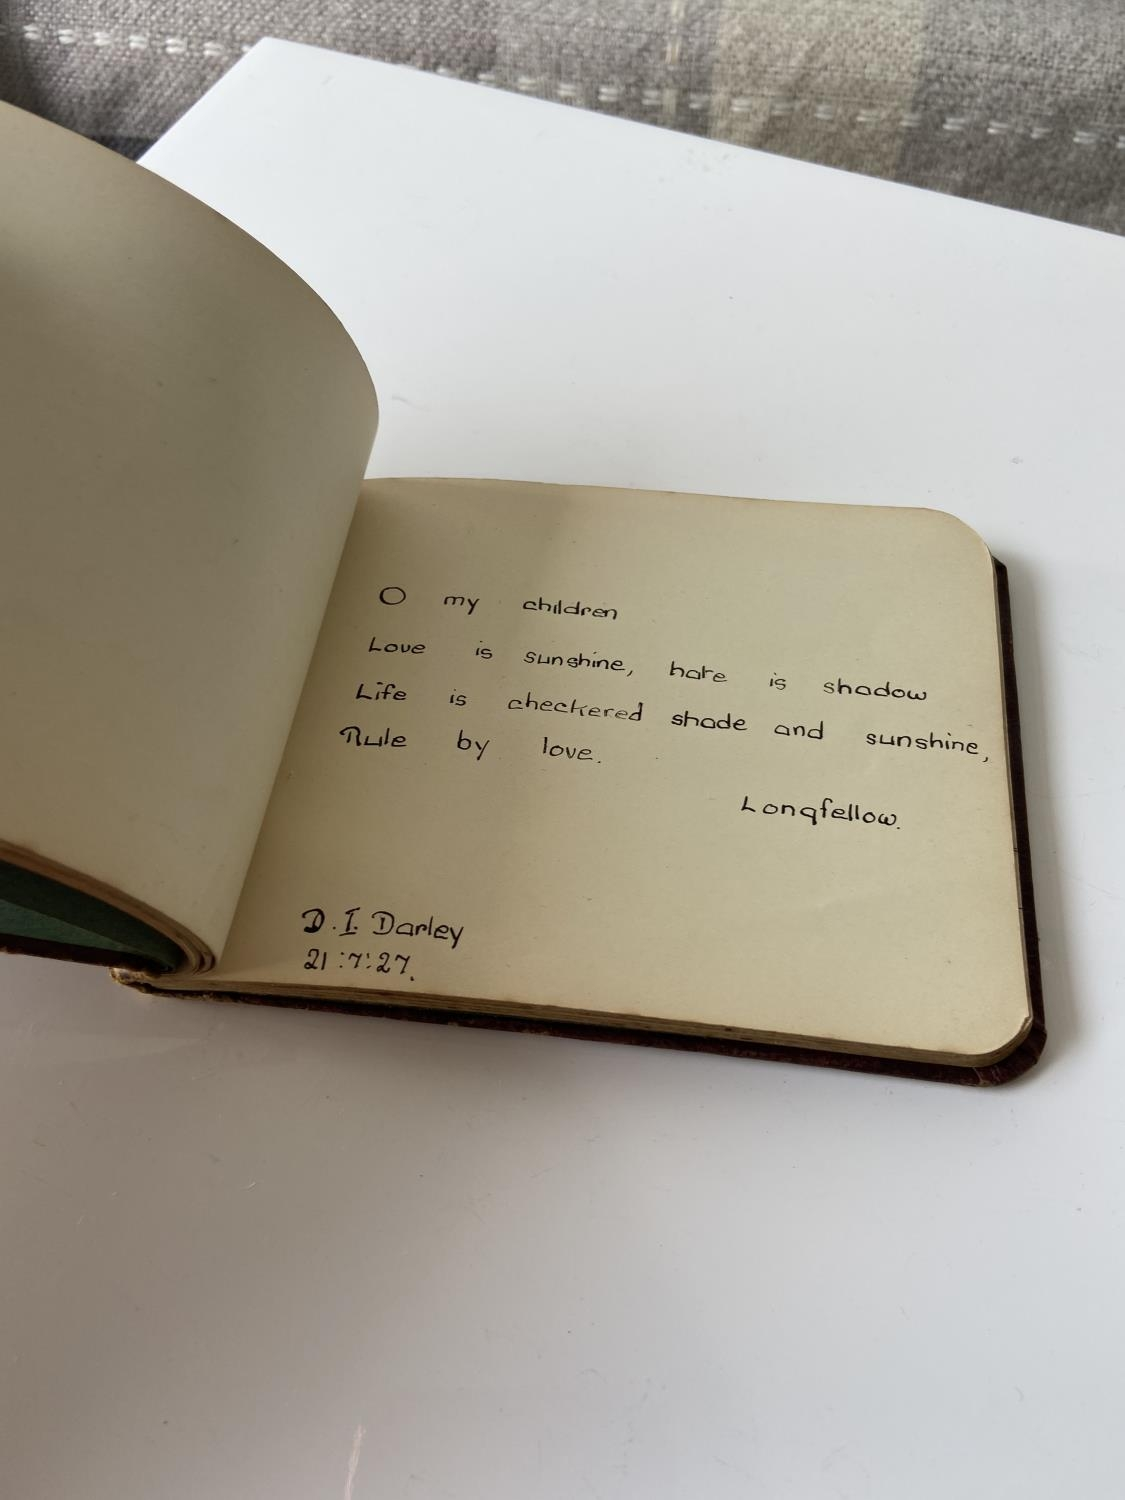 An old autograph album containing various poems, sayings & doodles - Image 8 of 18